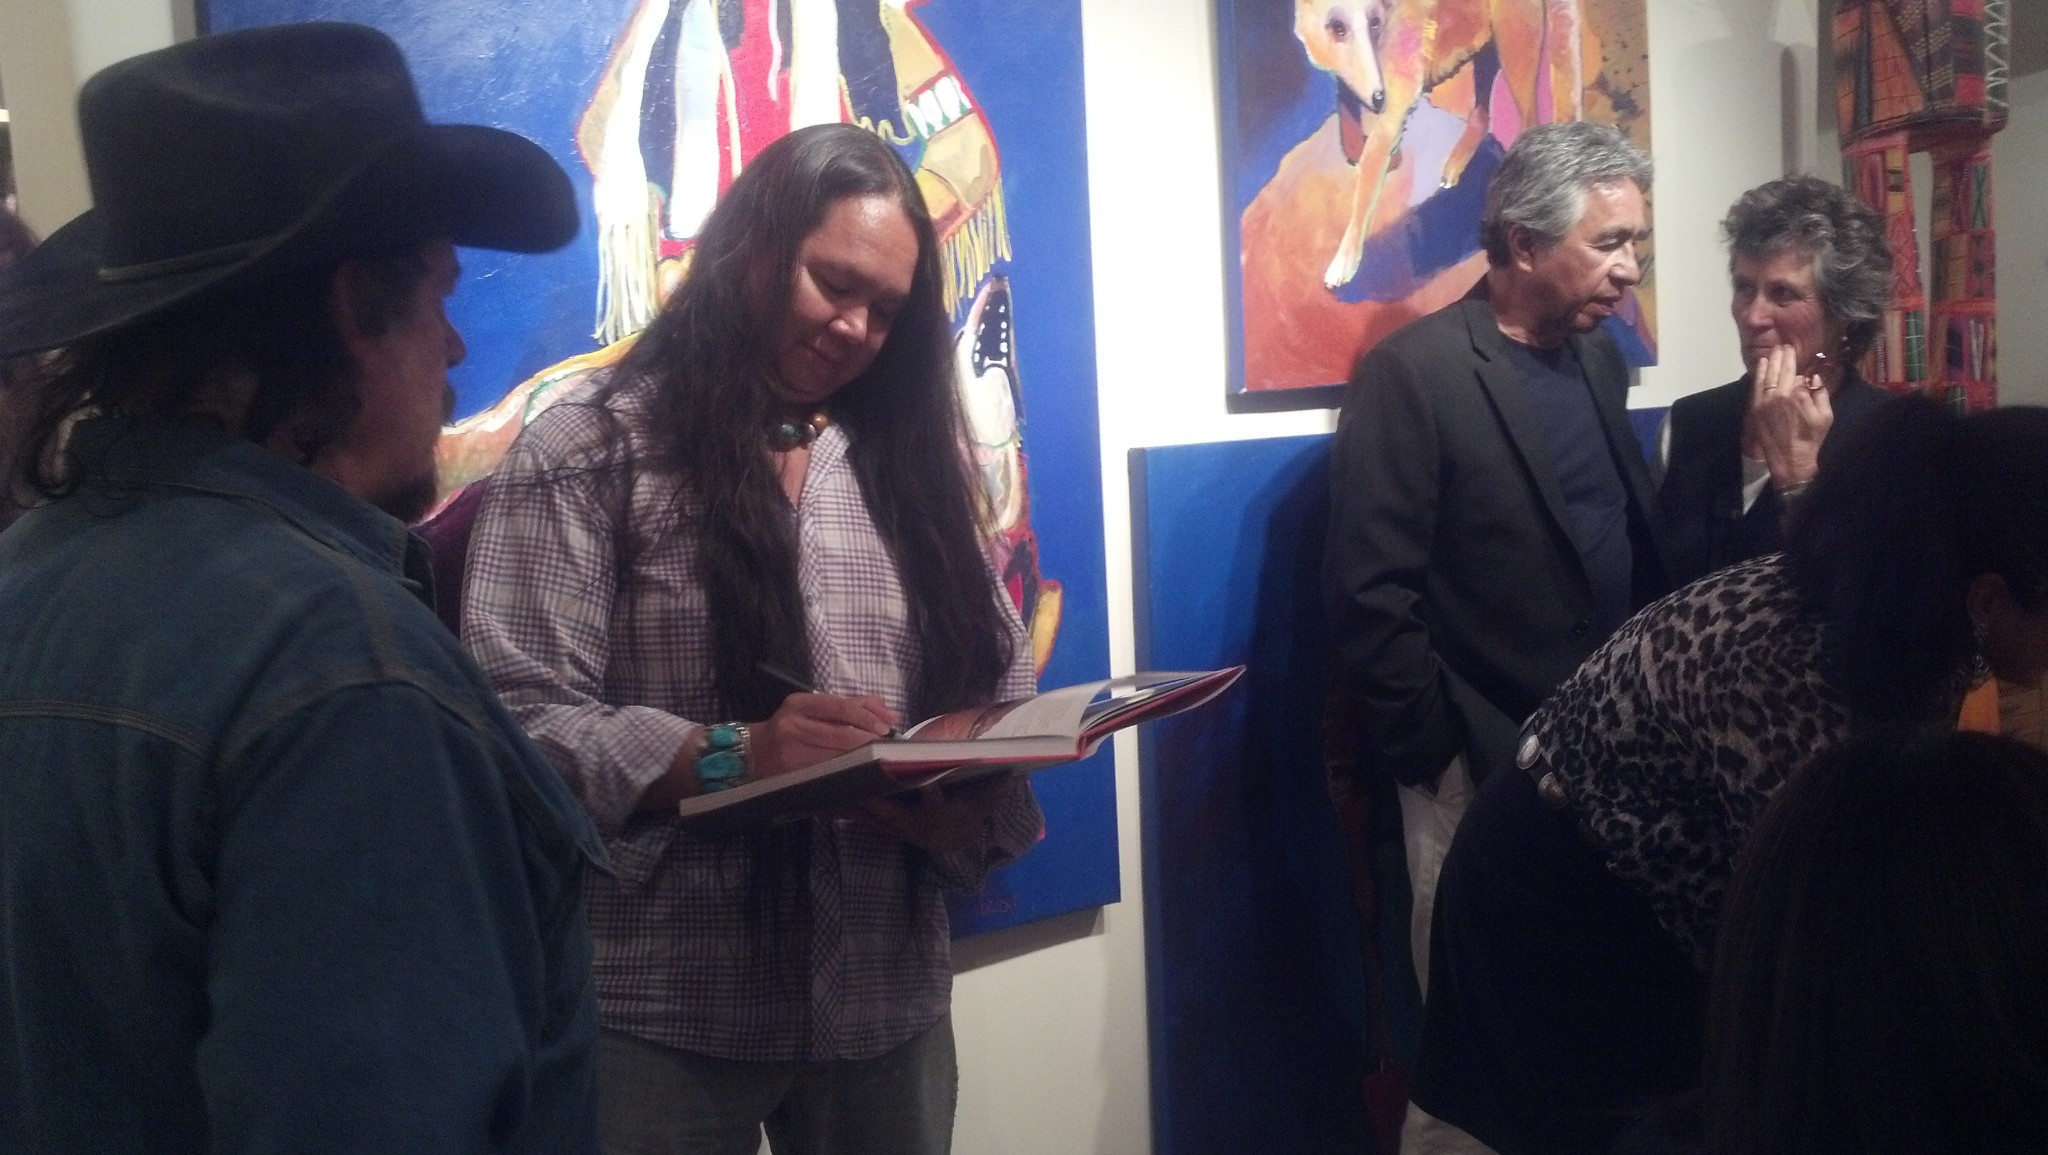 Ken-Lingad-book signing_contemporary-native-american-artists_kevin-red-star_jody-naranjo.jpg